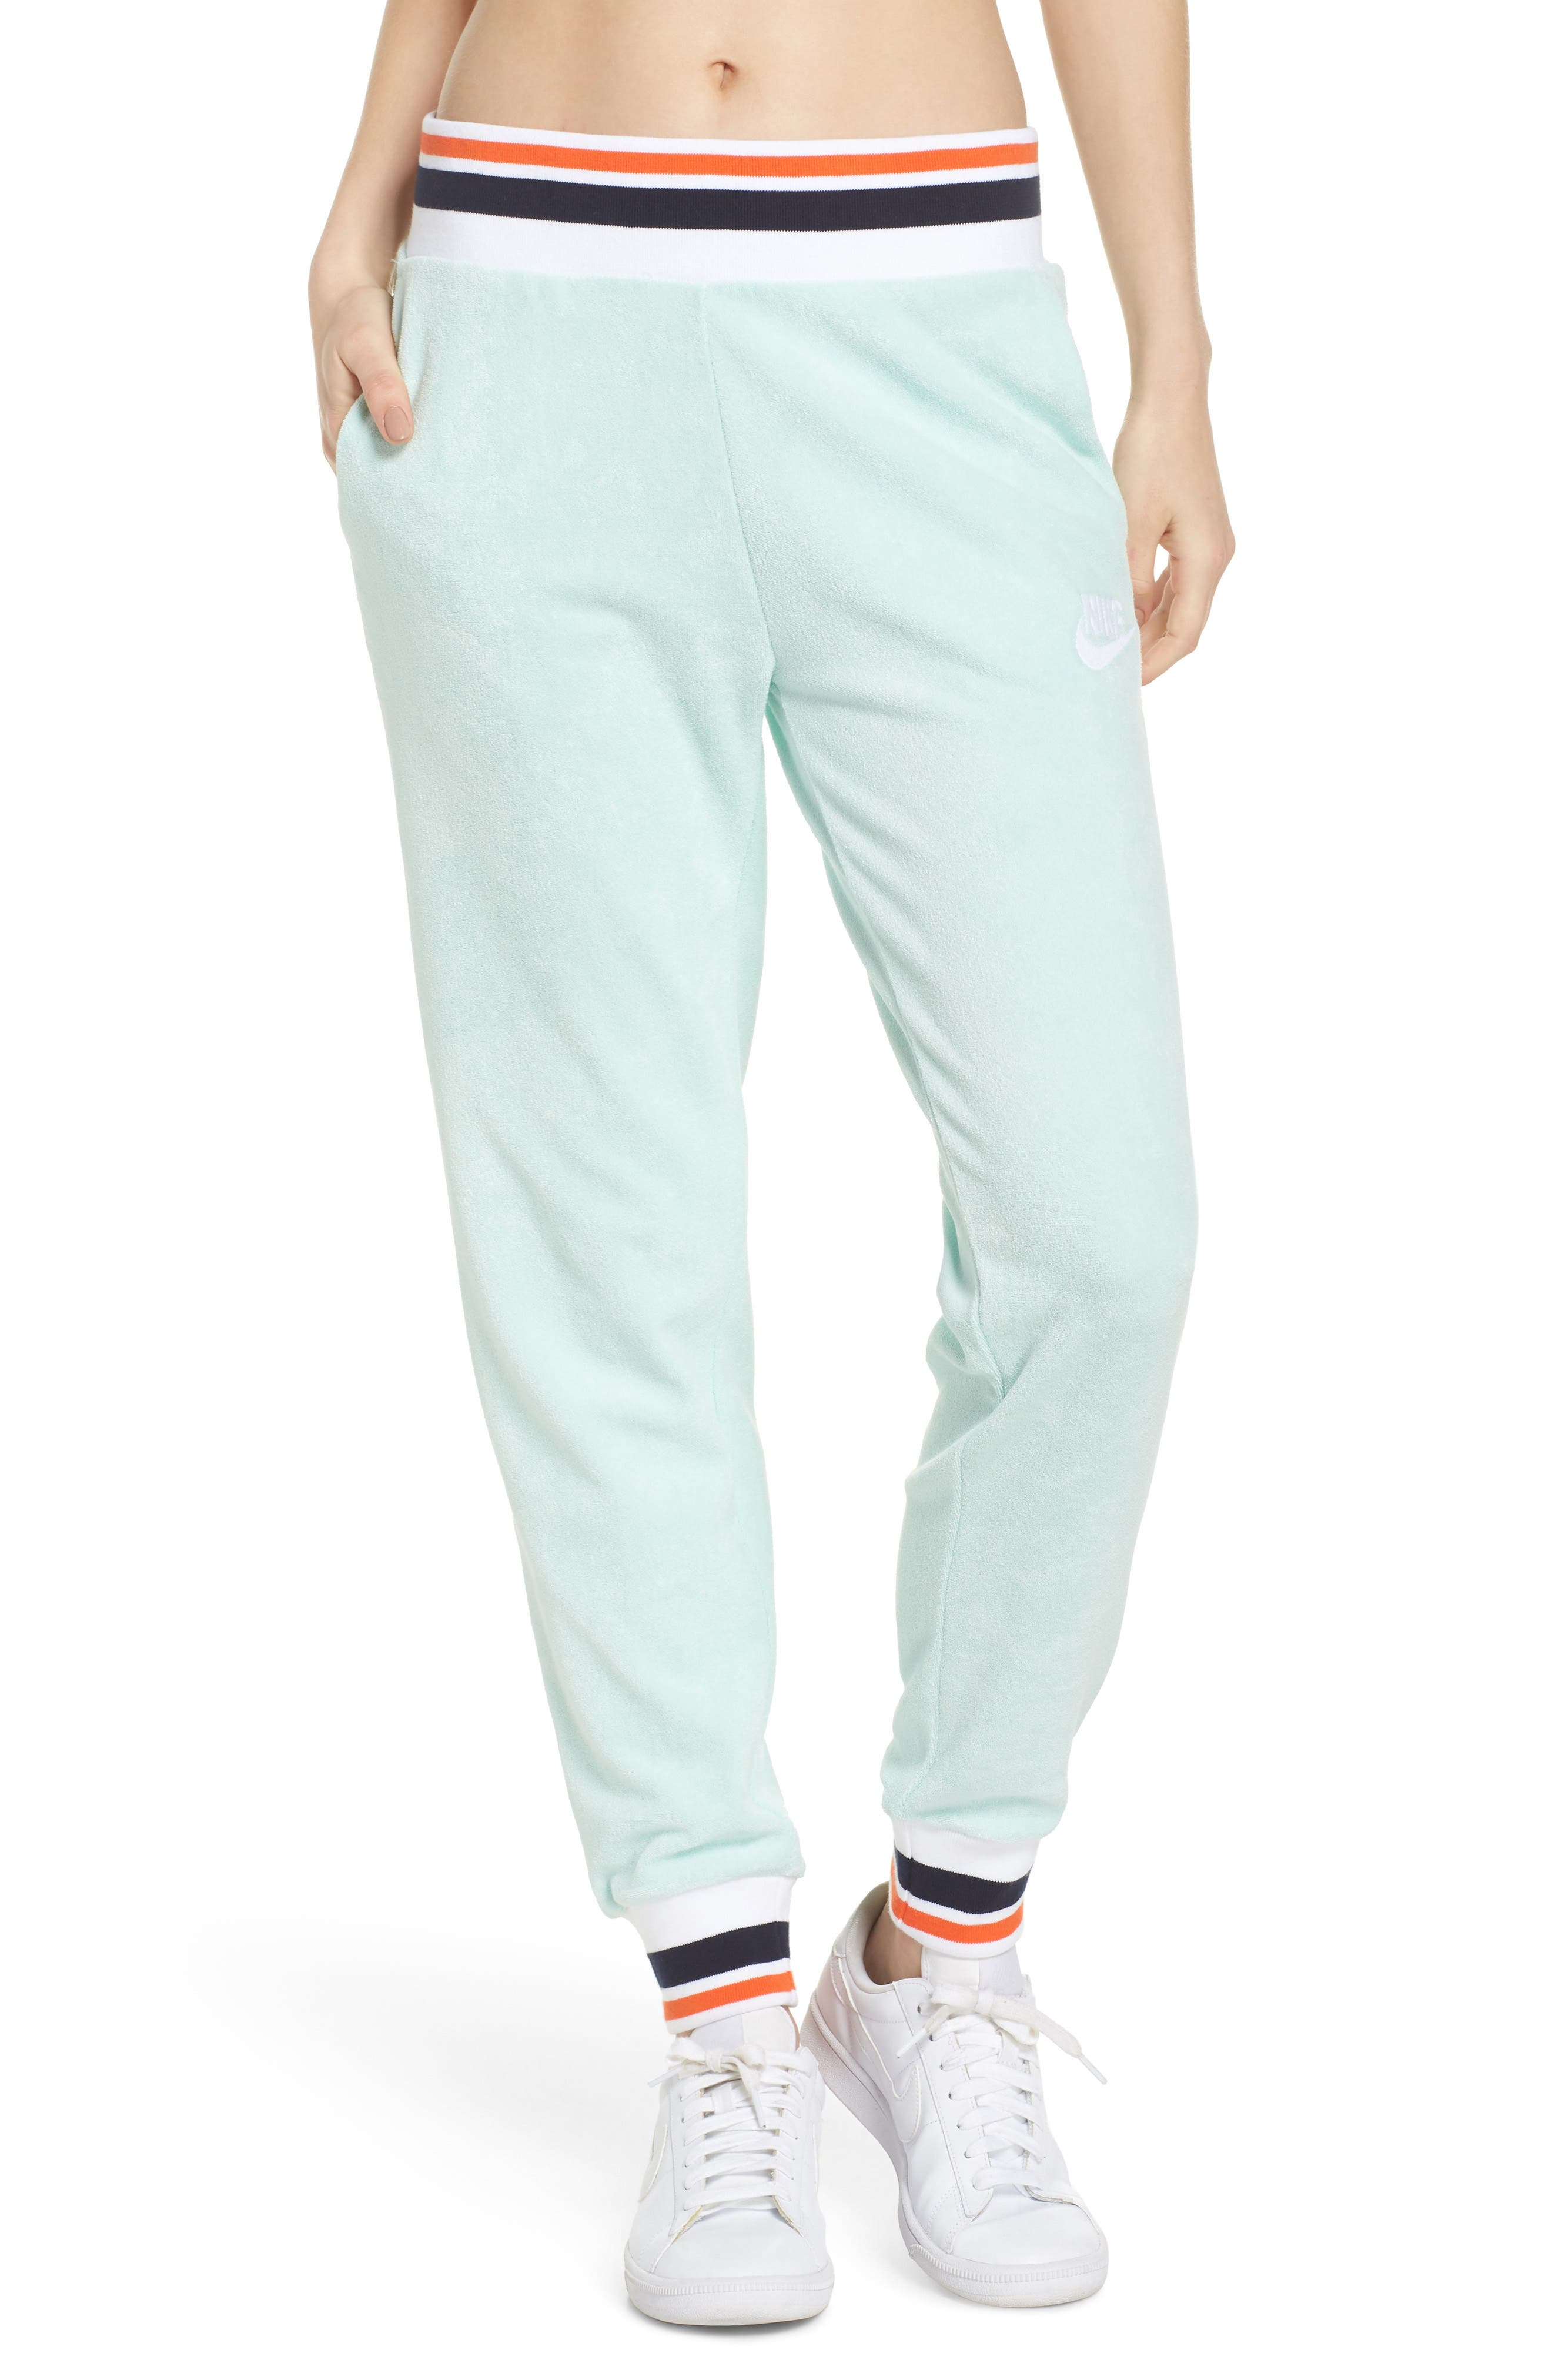 Sportswear French Terry Pants,                             Main thumbnail 1, color,                             Igloo/ White